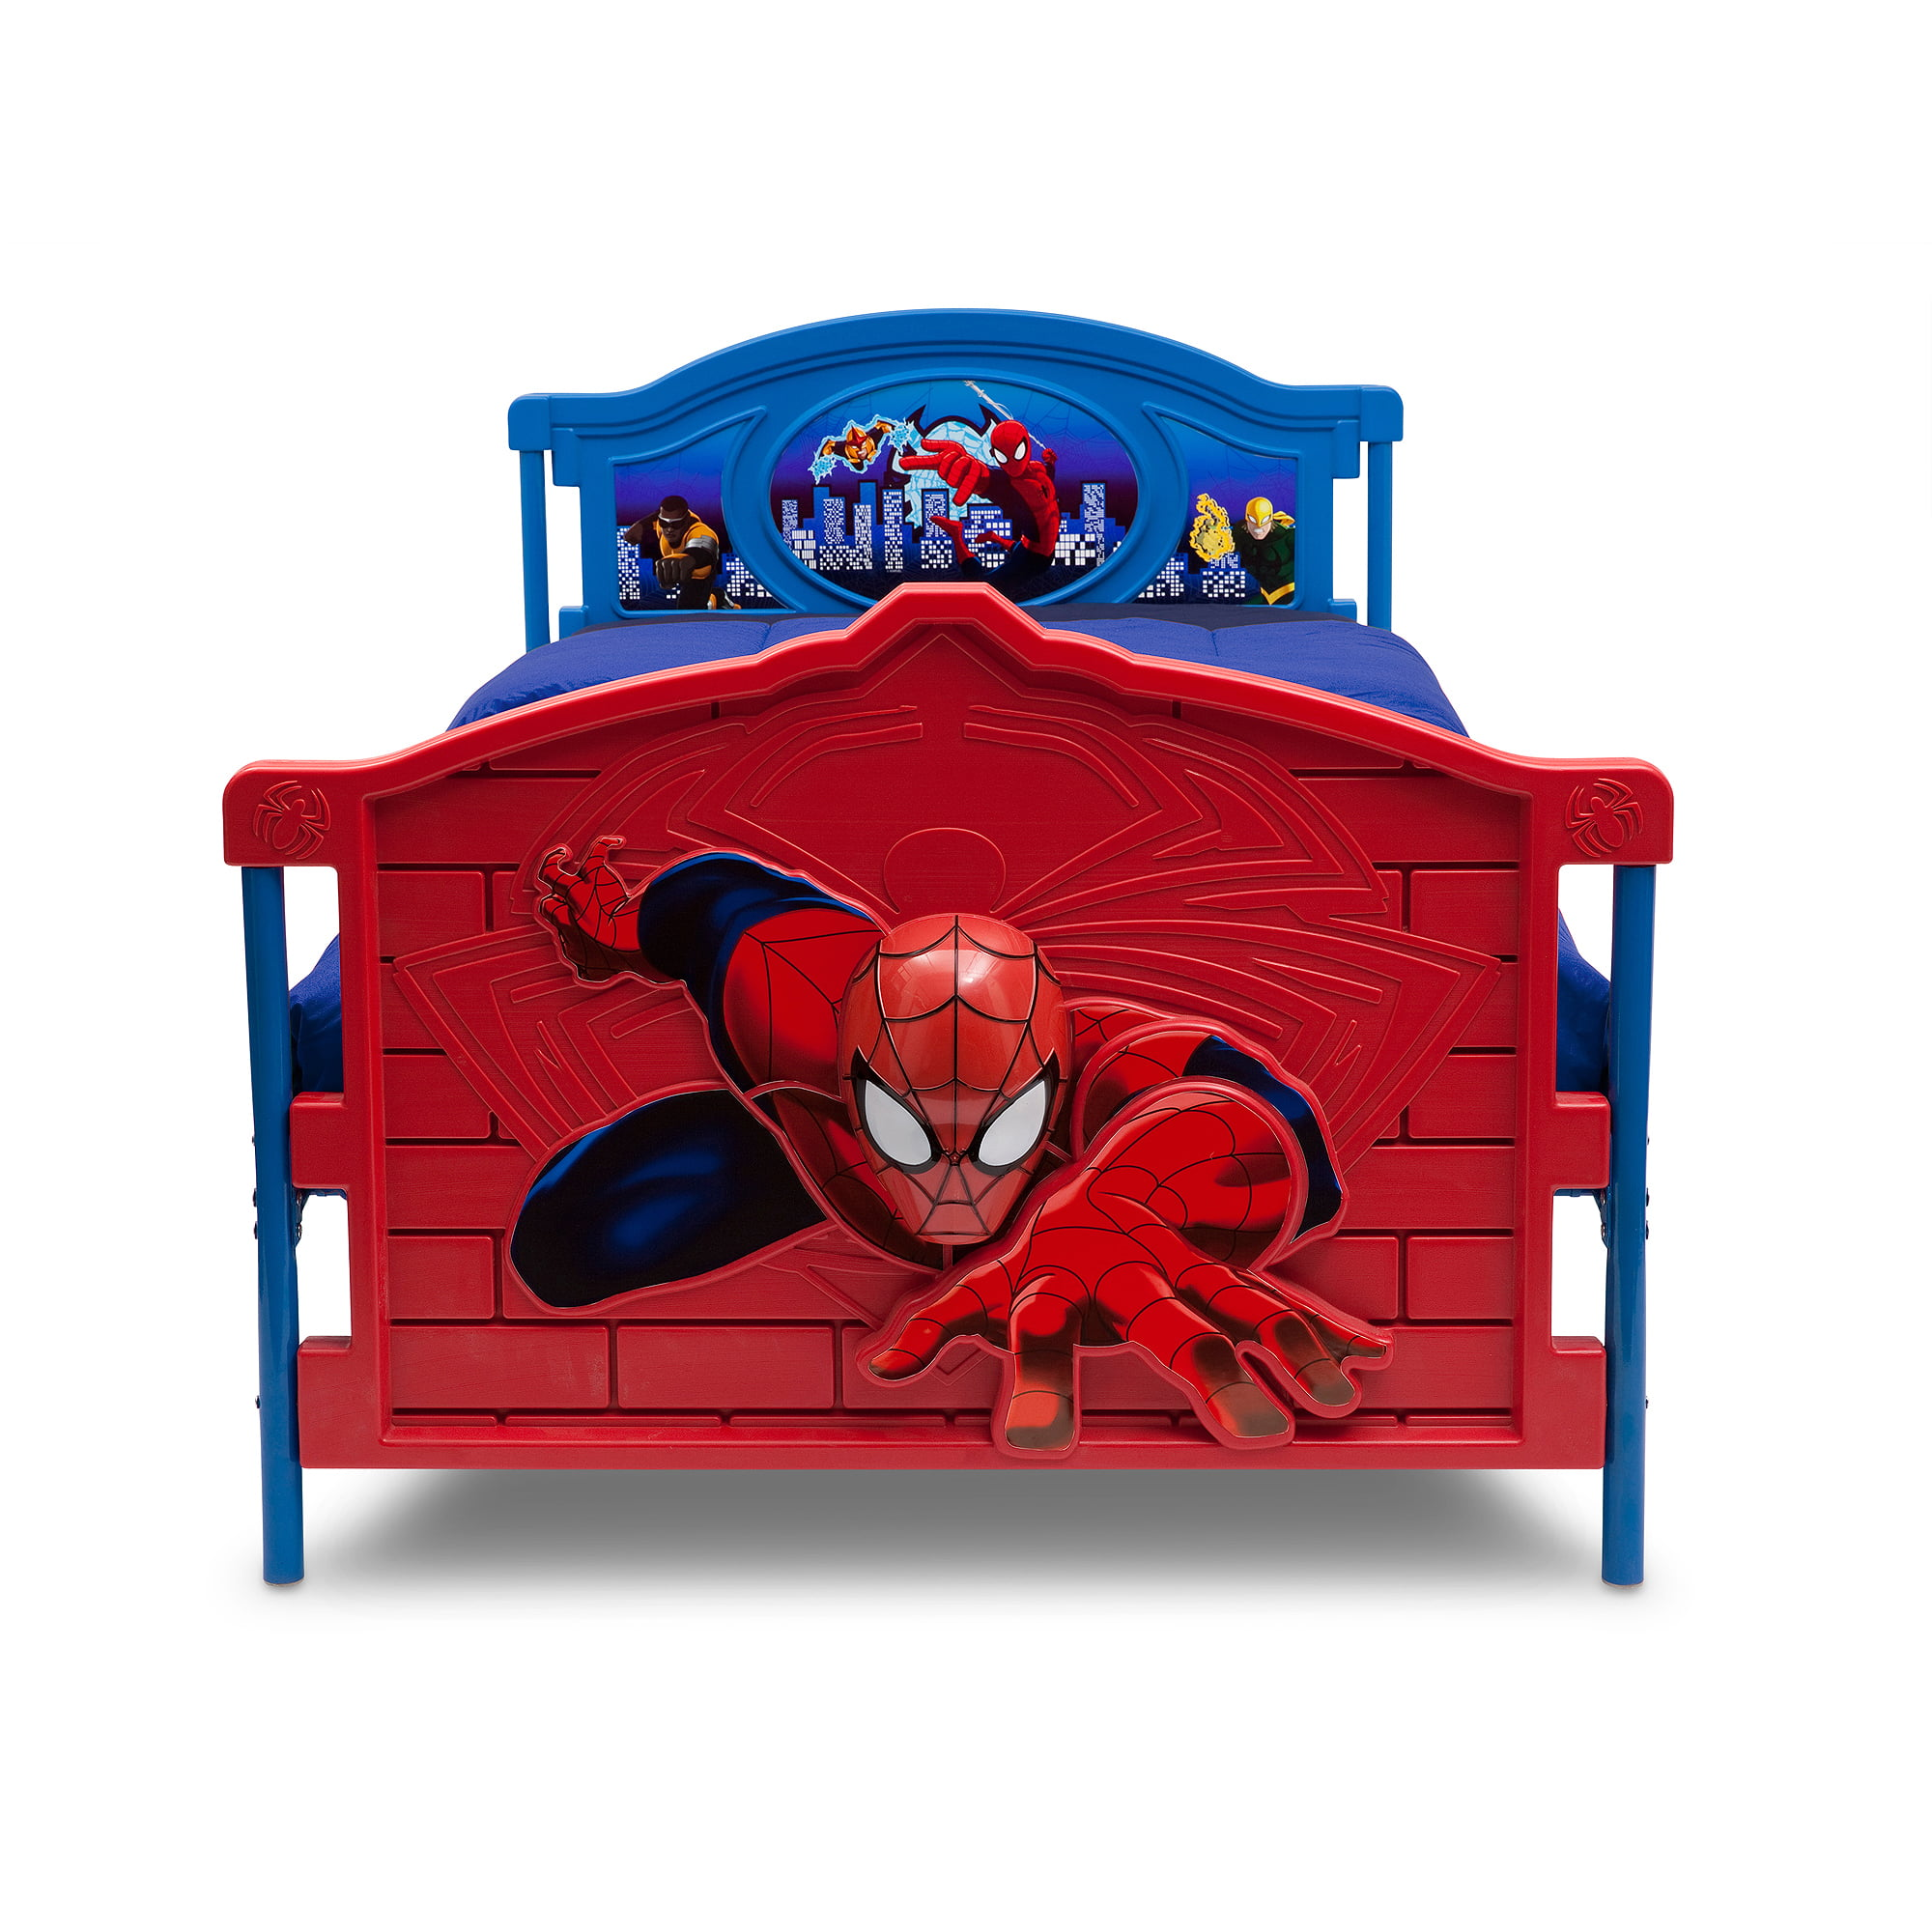 sc 1 st  Walmart & Marvel Spider-Man 3D Twin Bed - Walmart.com